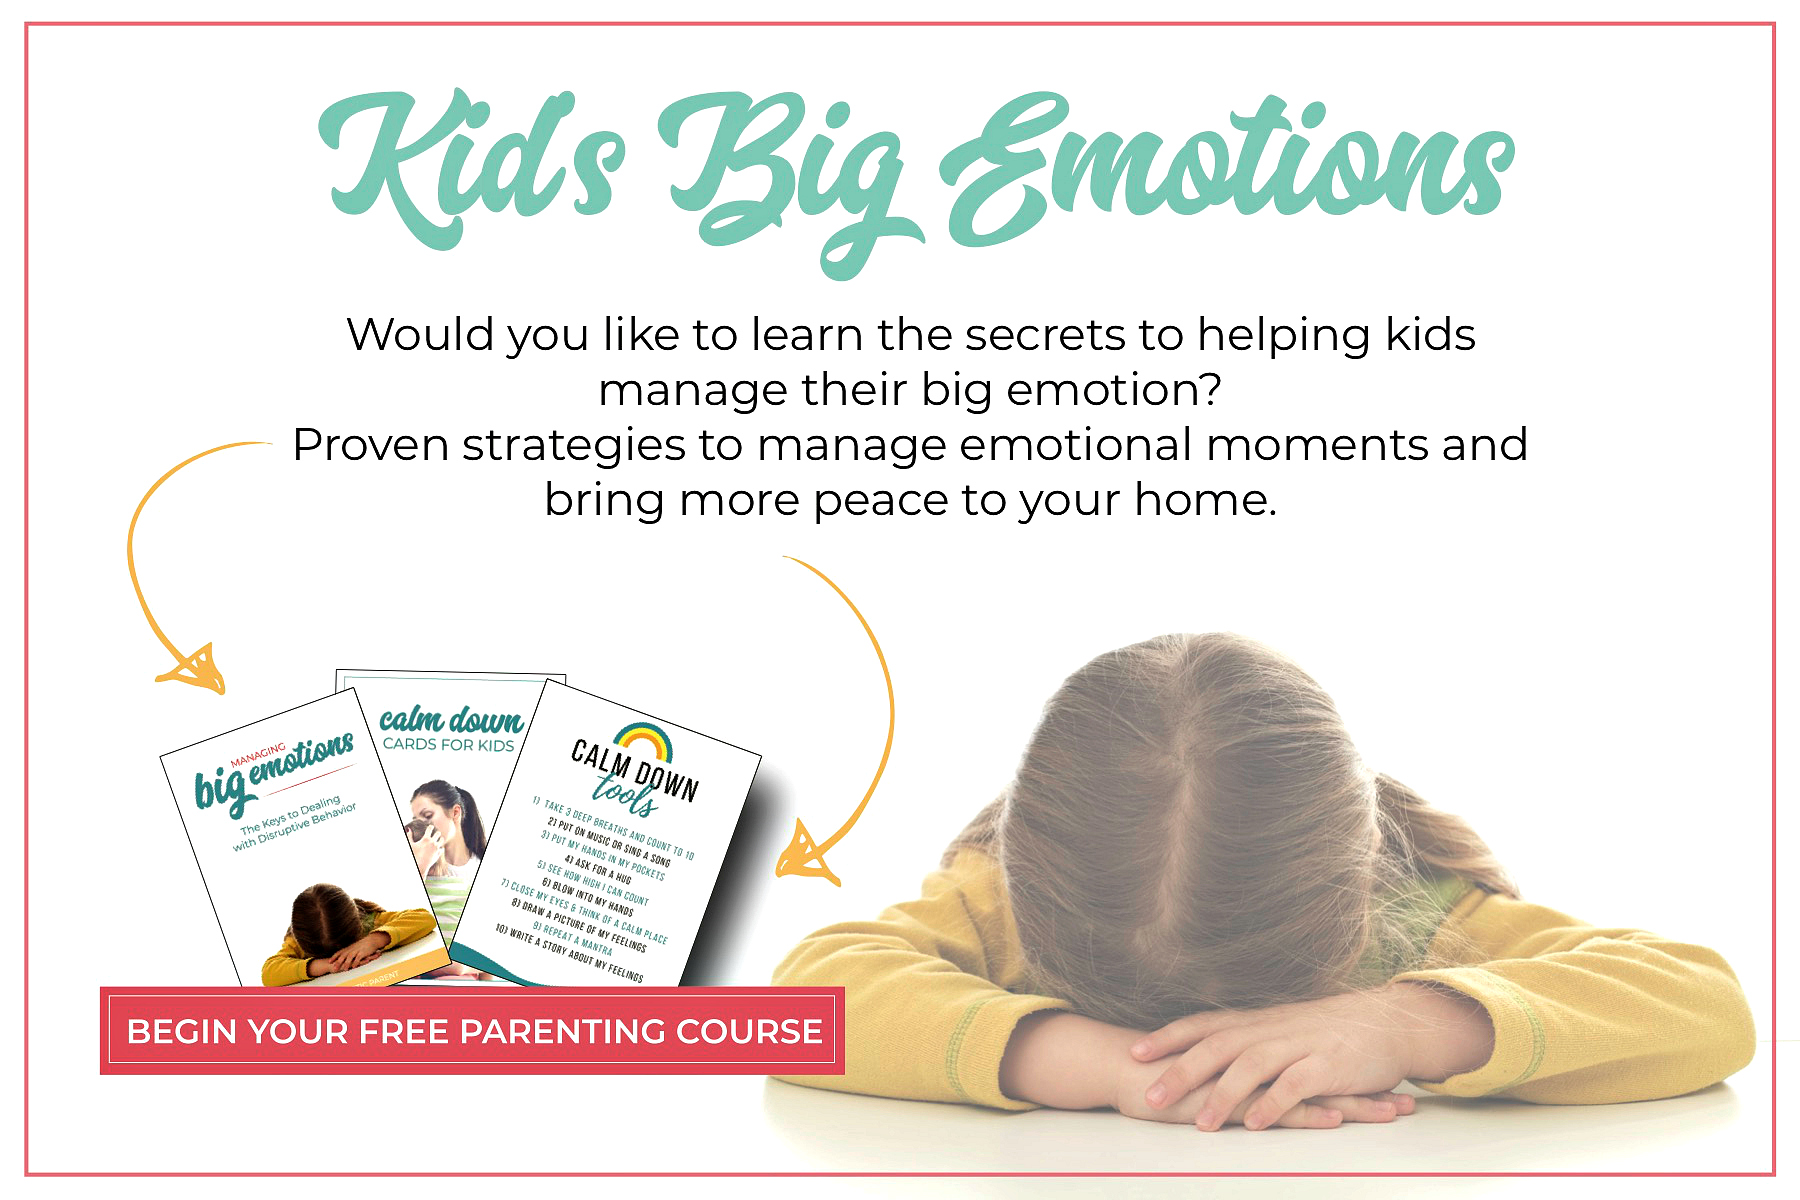 Need A Little Extra Handling Your Childs Big Emotions Heres A Free Parenting Course To Help You Both Turn Things Around